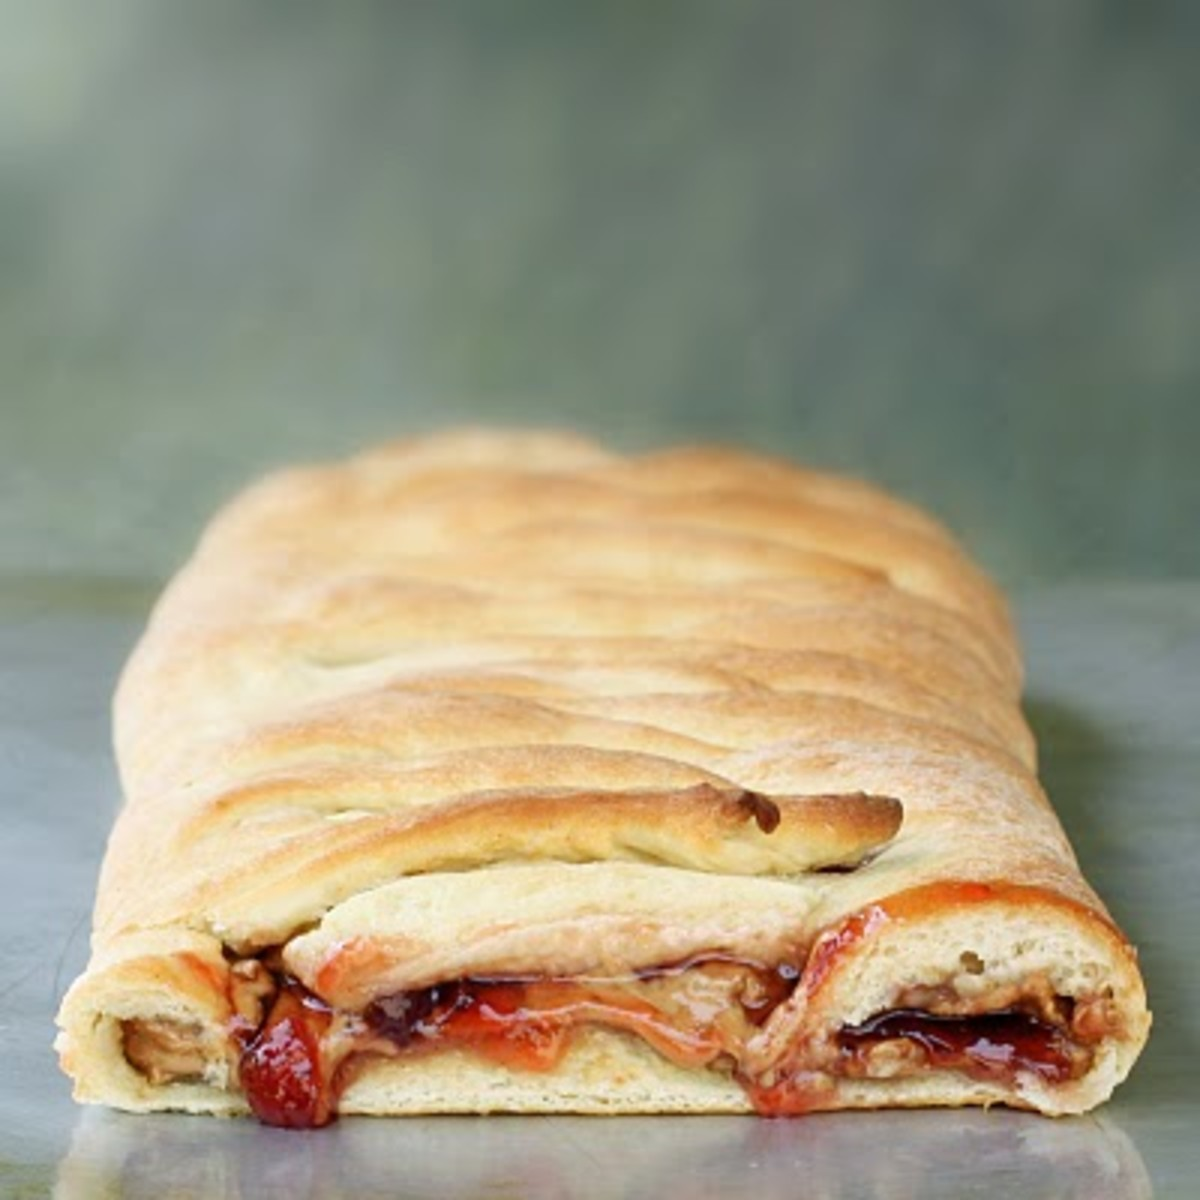 10-ways-to-make-peanut-butter-and-jelly-sandwiches